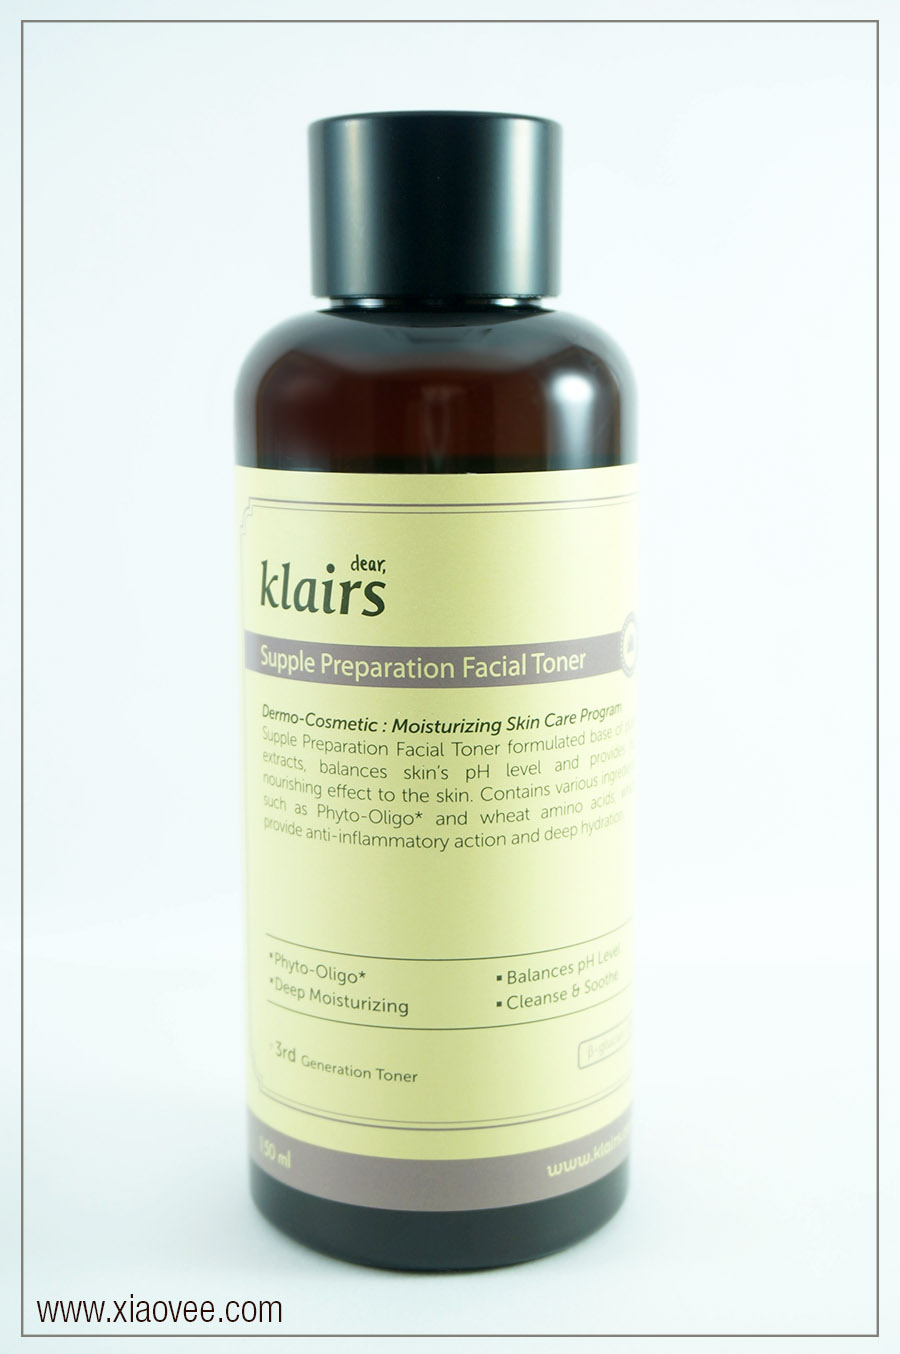 Klairs Supple Preparation Facial Toner Review, Korean Klairs Skincare Brand, Wishtrend, No animal testing skincare, cruelty free skincare, paraben free skincare